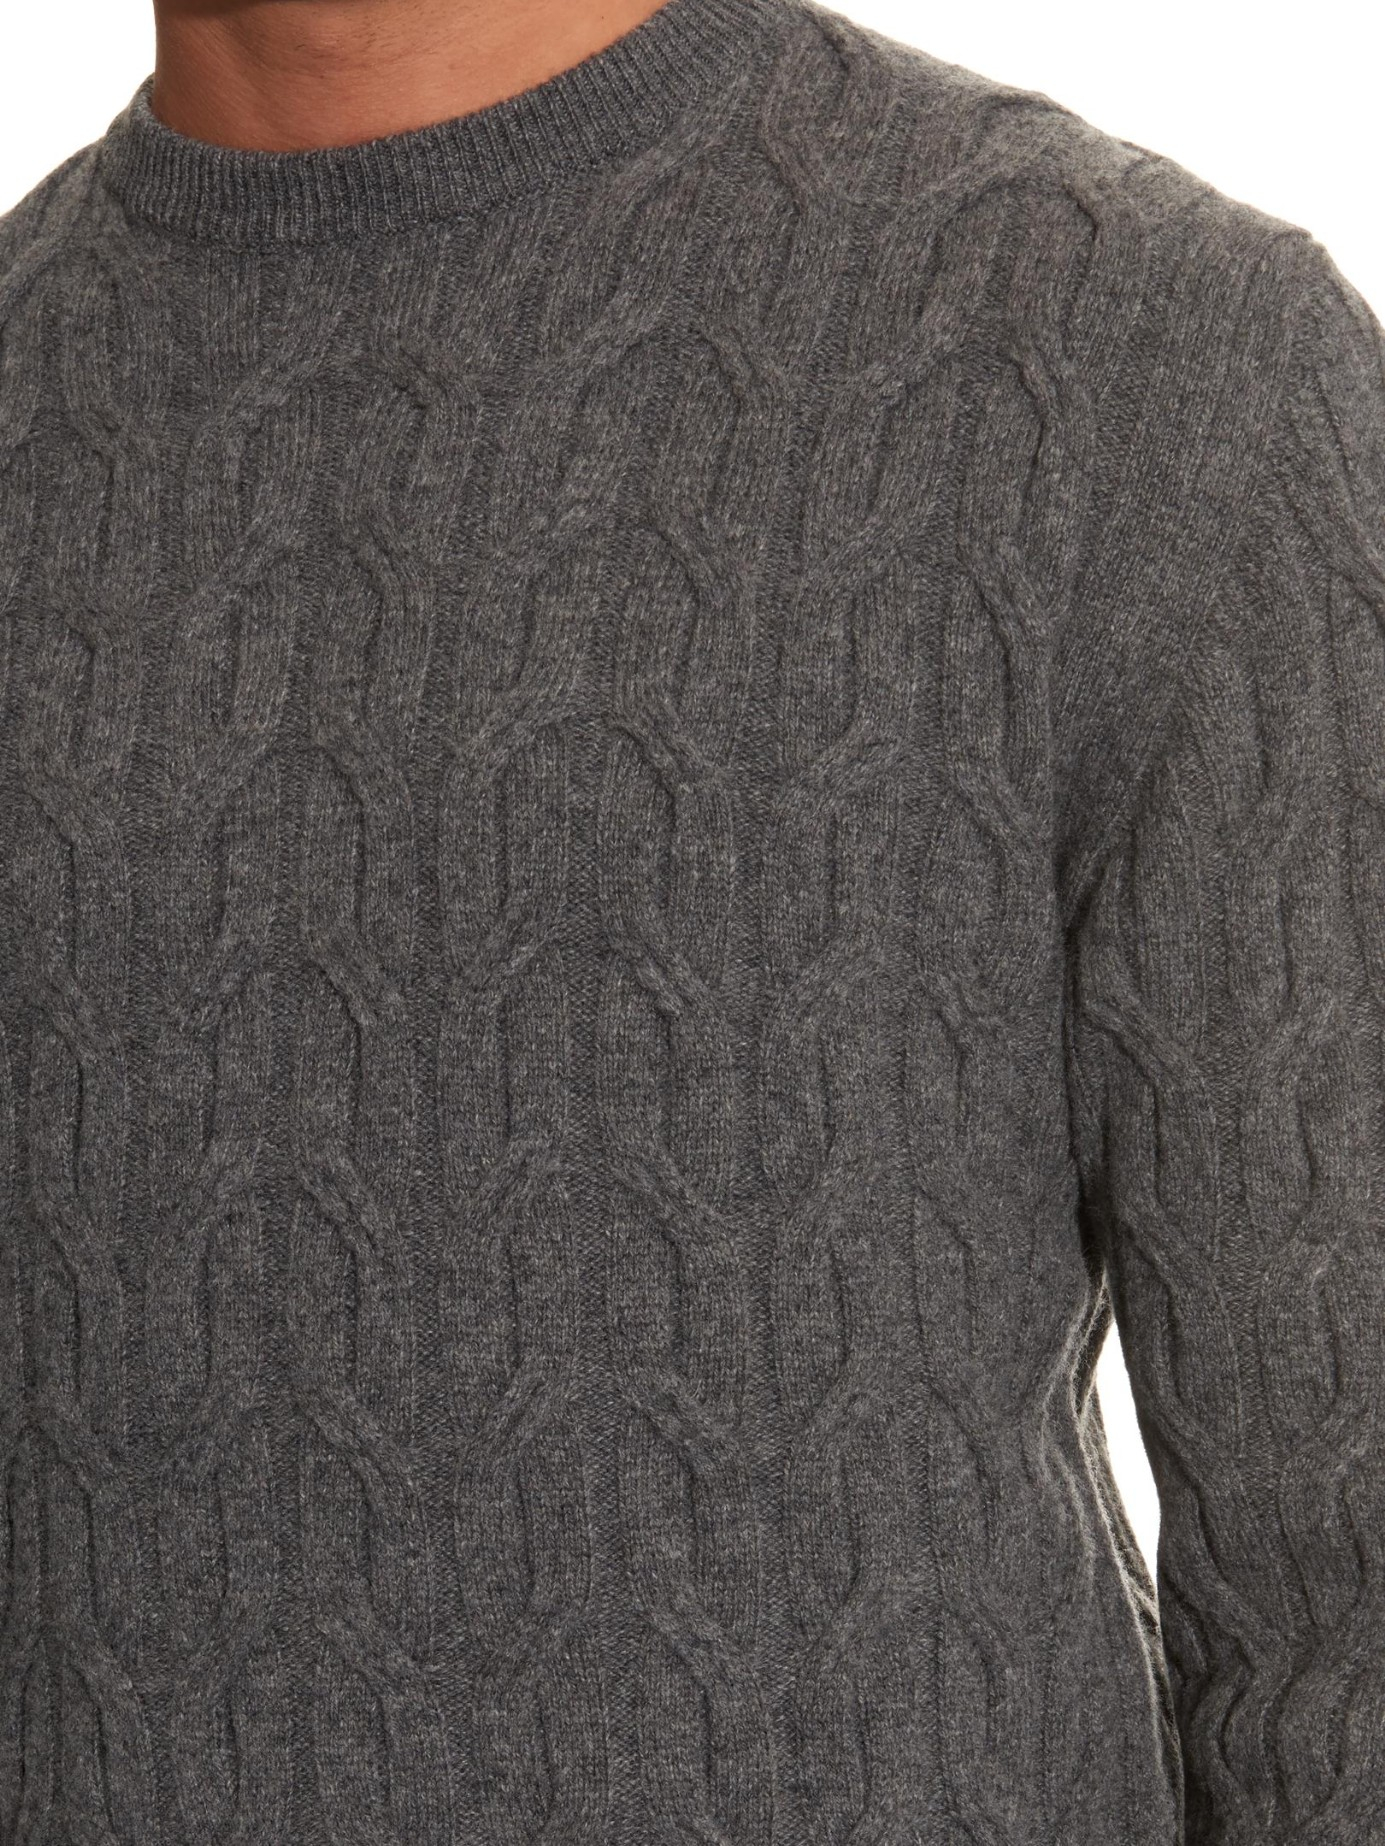 Lanvin Cable-knit Wool Sweater in Gray for Men | Lyst